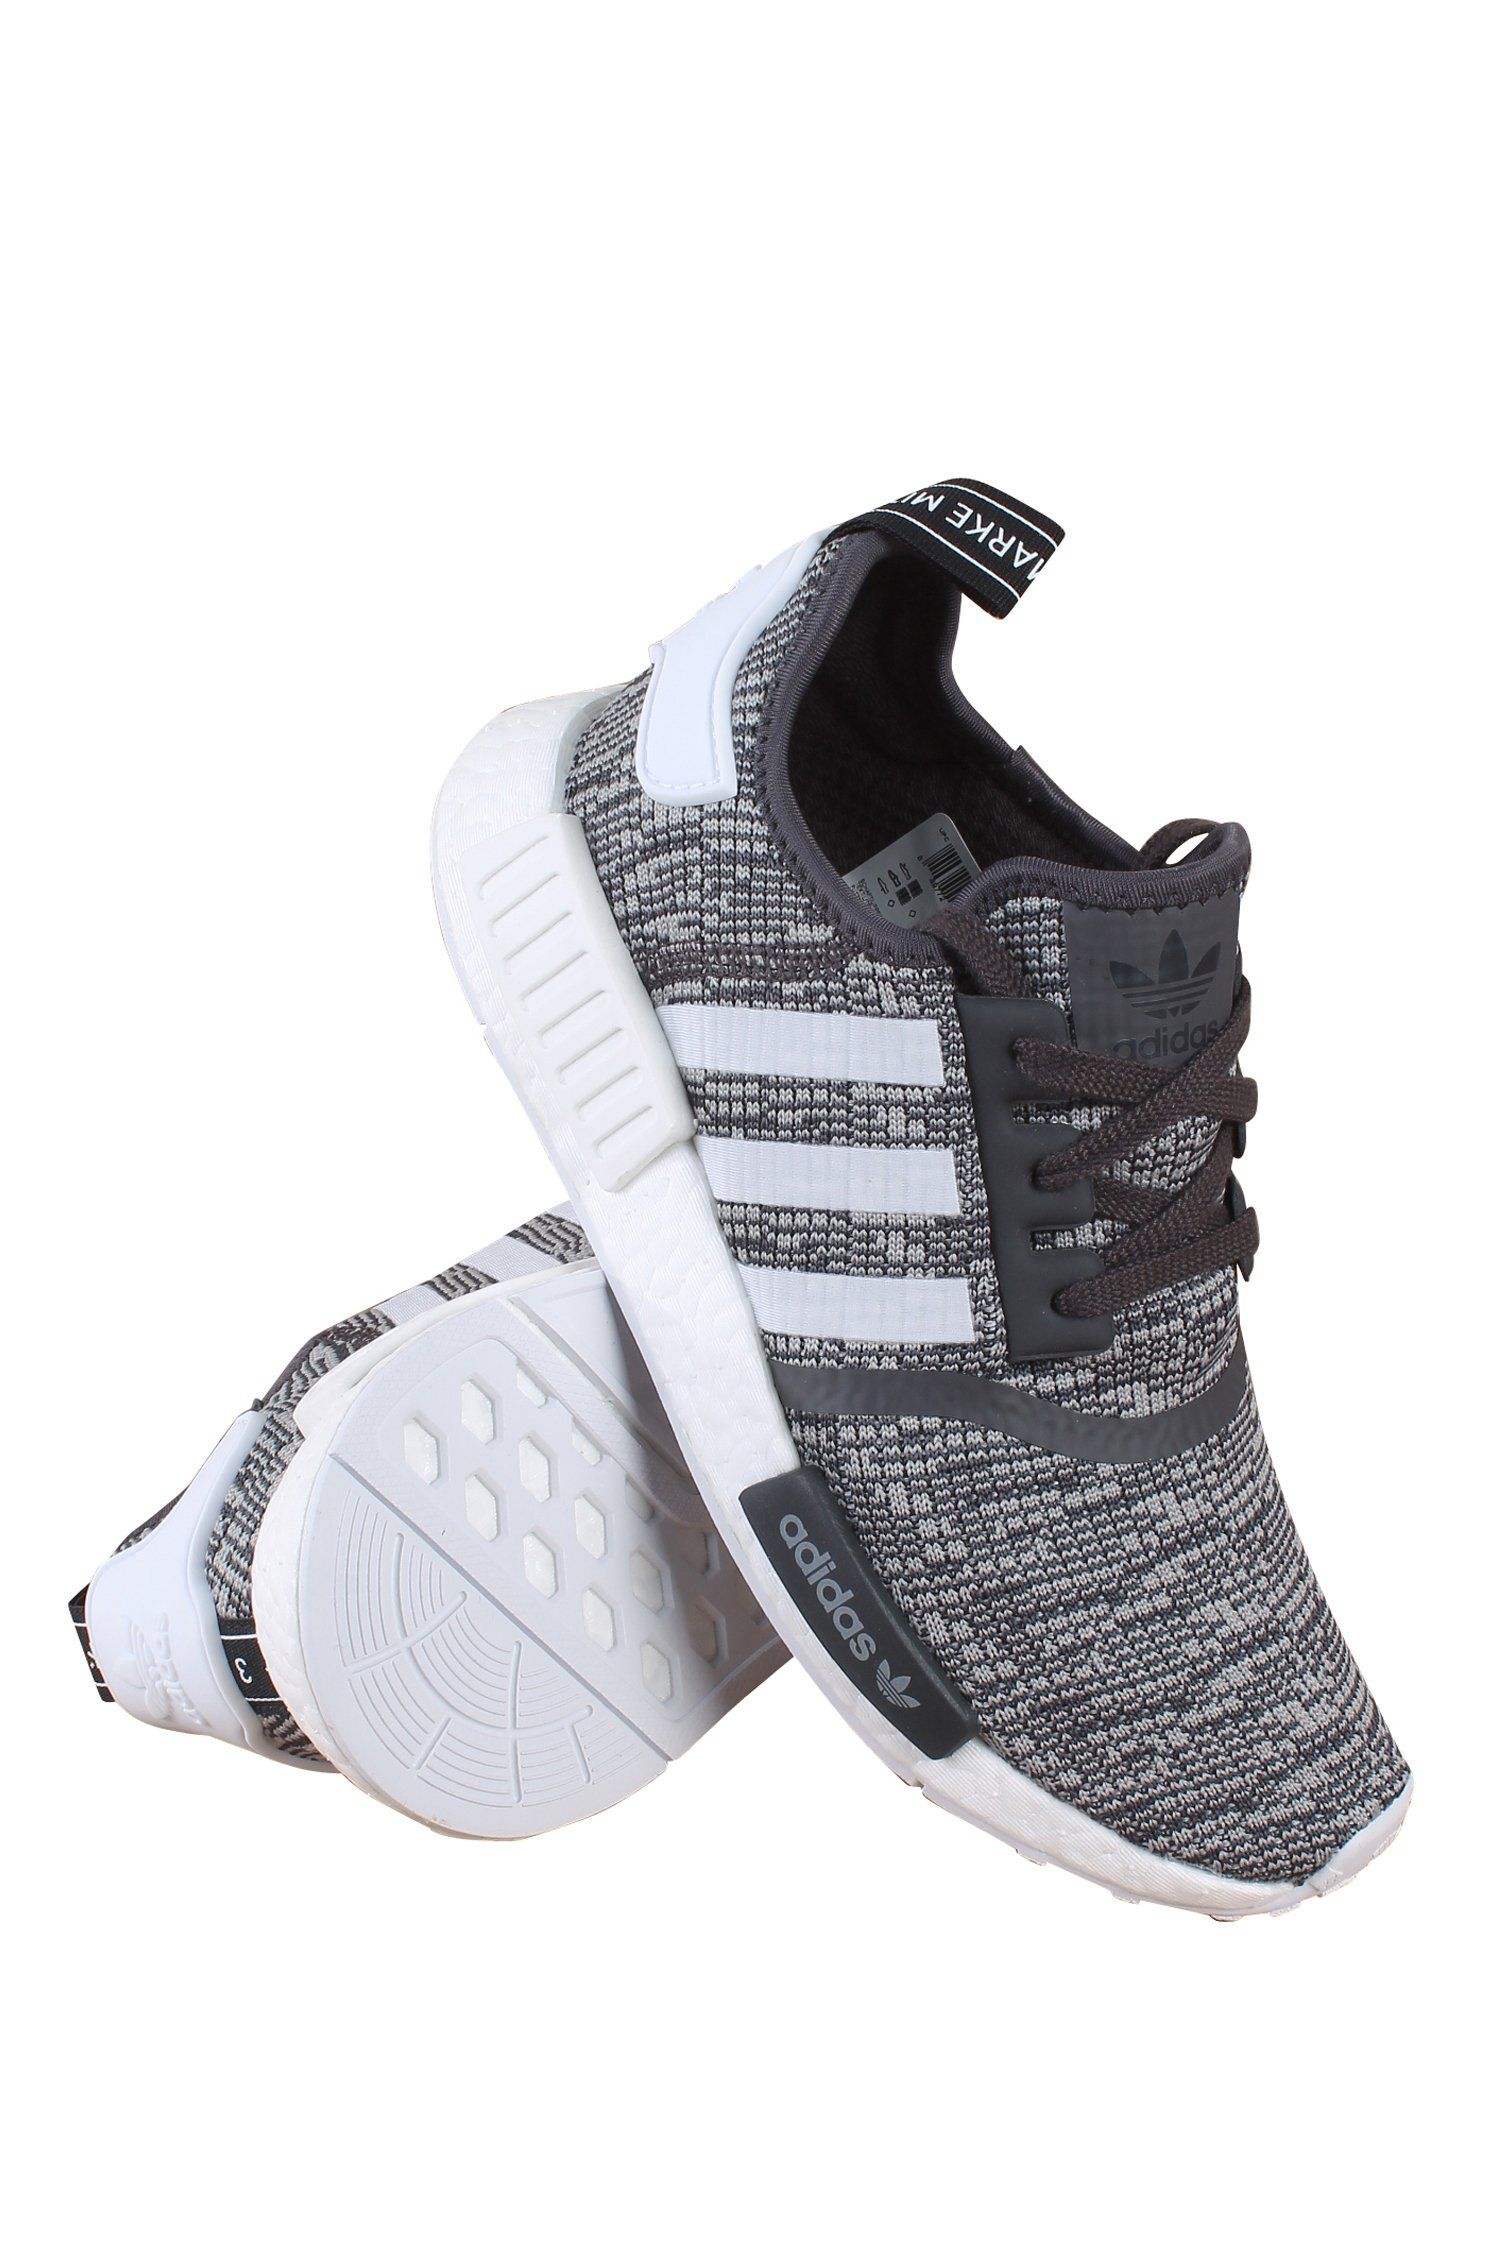 Adidas NMD R1 Glitch Women s Midnight Grey 10 BY3035